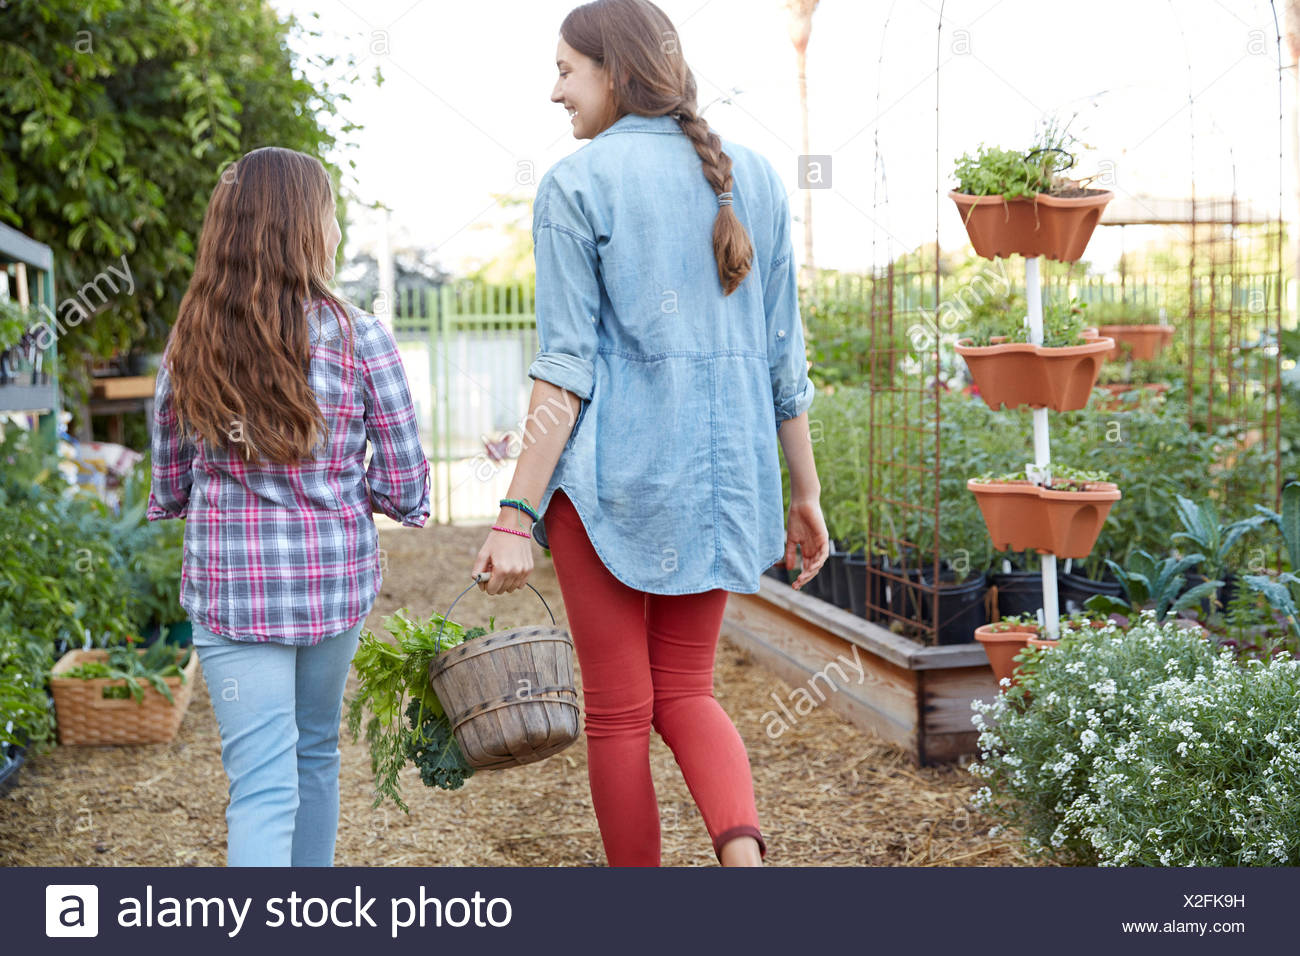 Latina sisters harvesting vegetables in garden - Stock Image